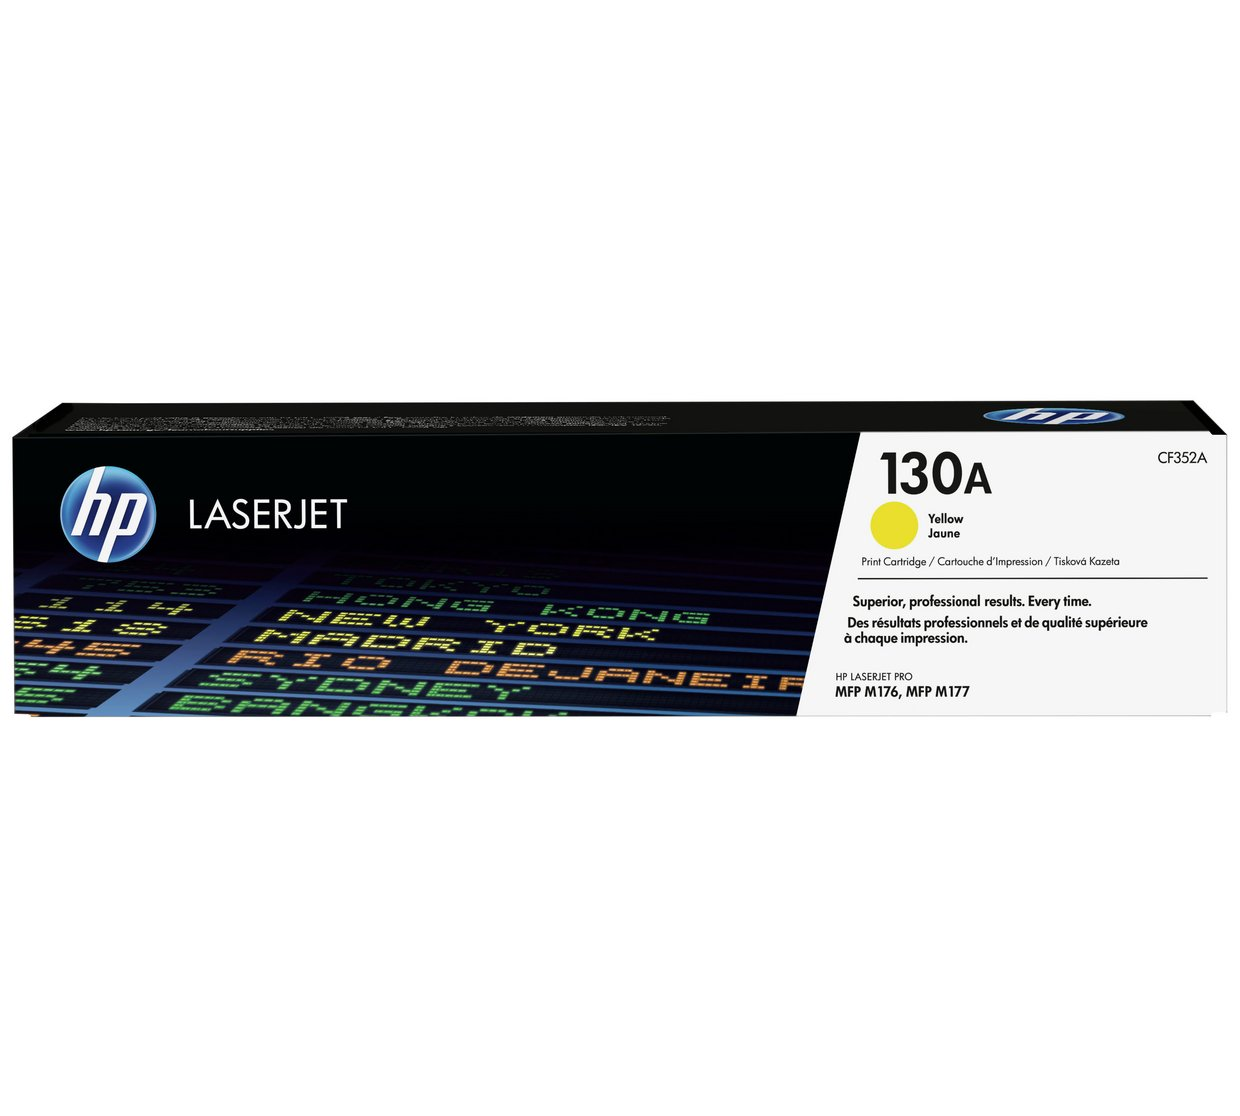 HP 130A CF352A Original Yellow LaserJet Toner